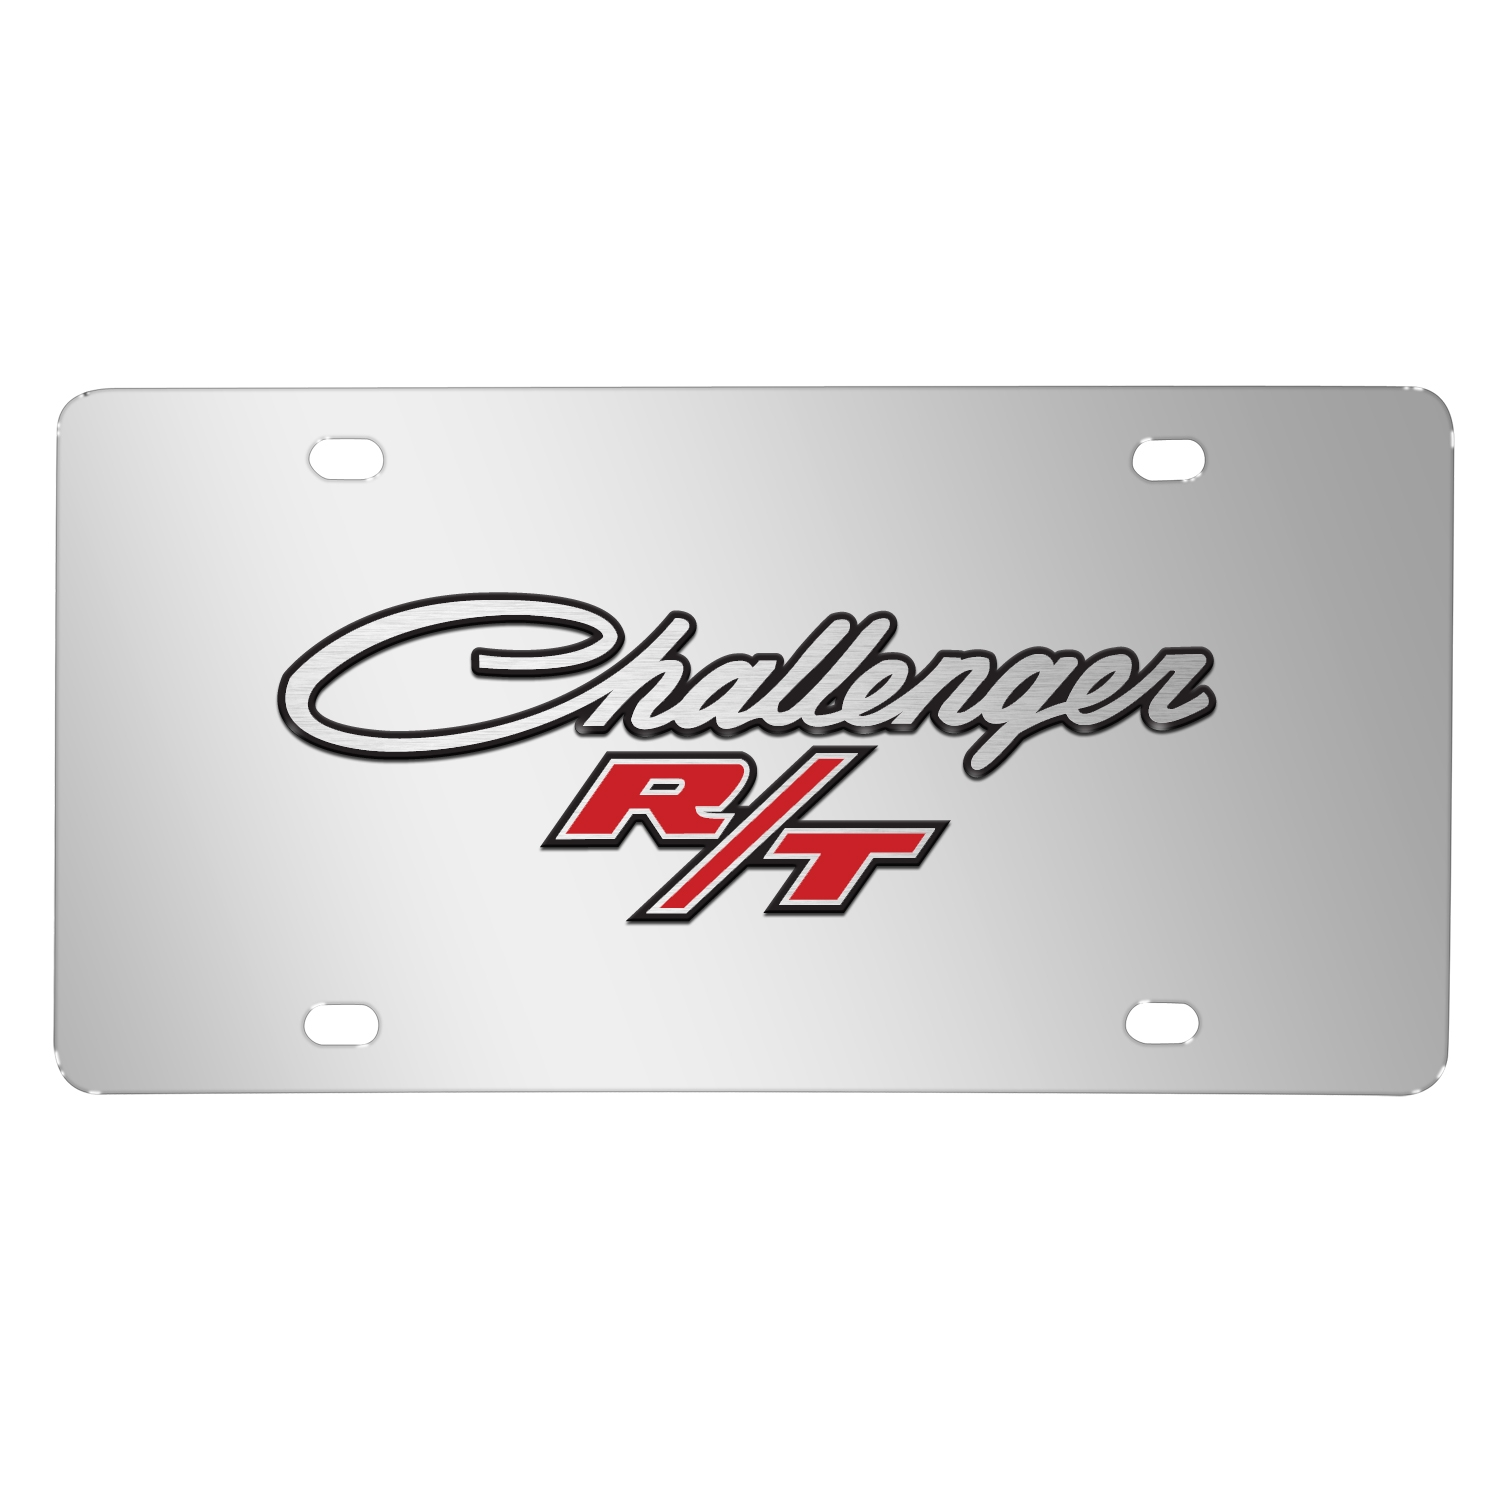 Dodge Challenger R/T Classic 3D Logo on Chrome Stainless Steel License Plate